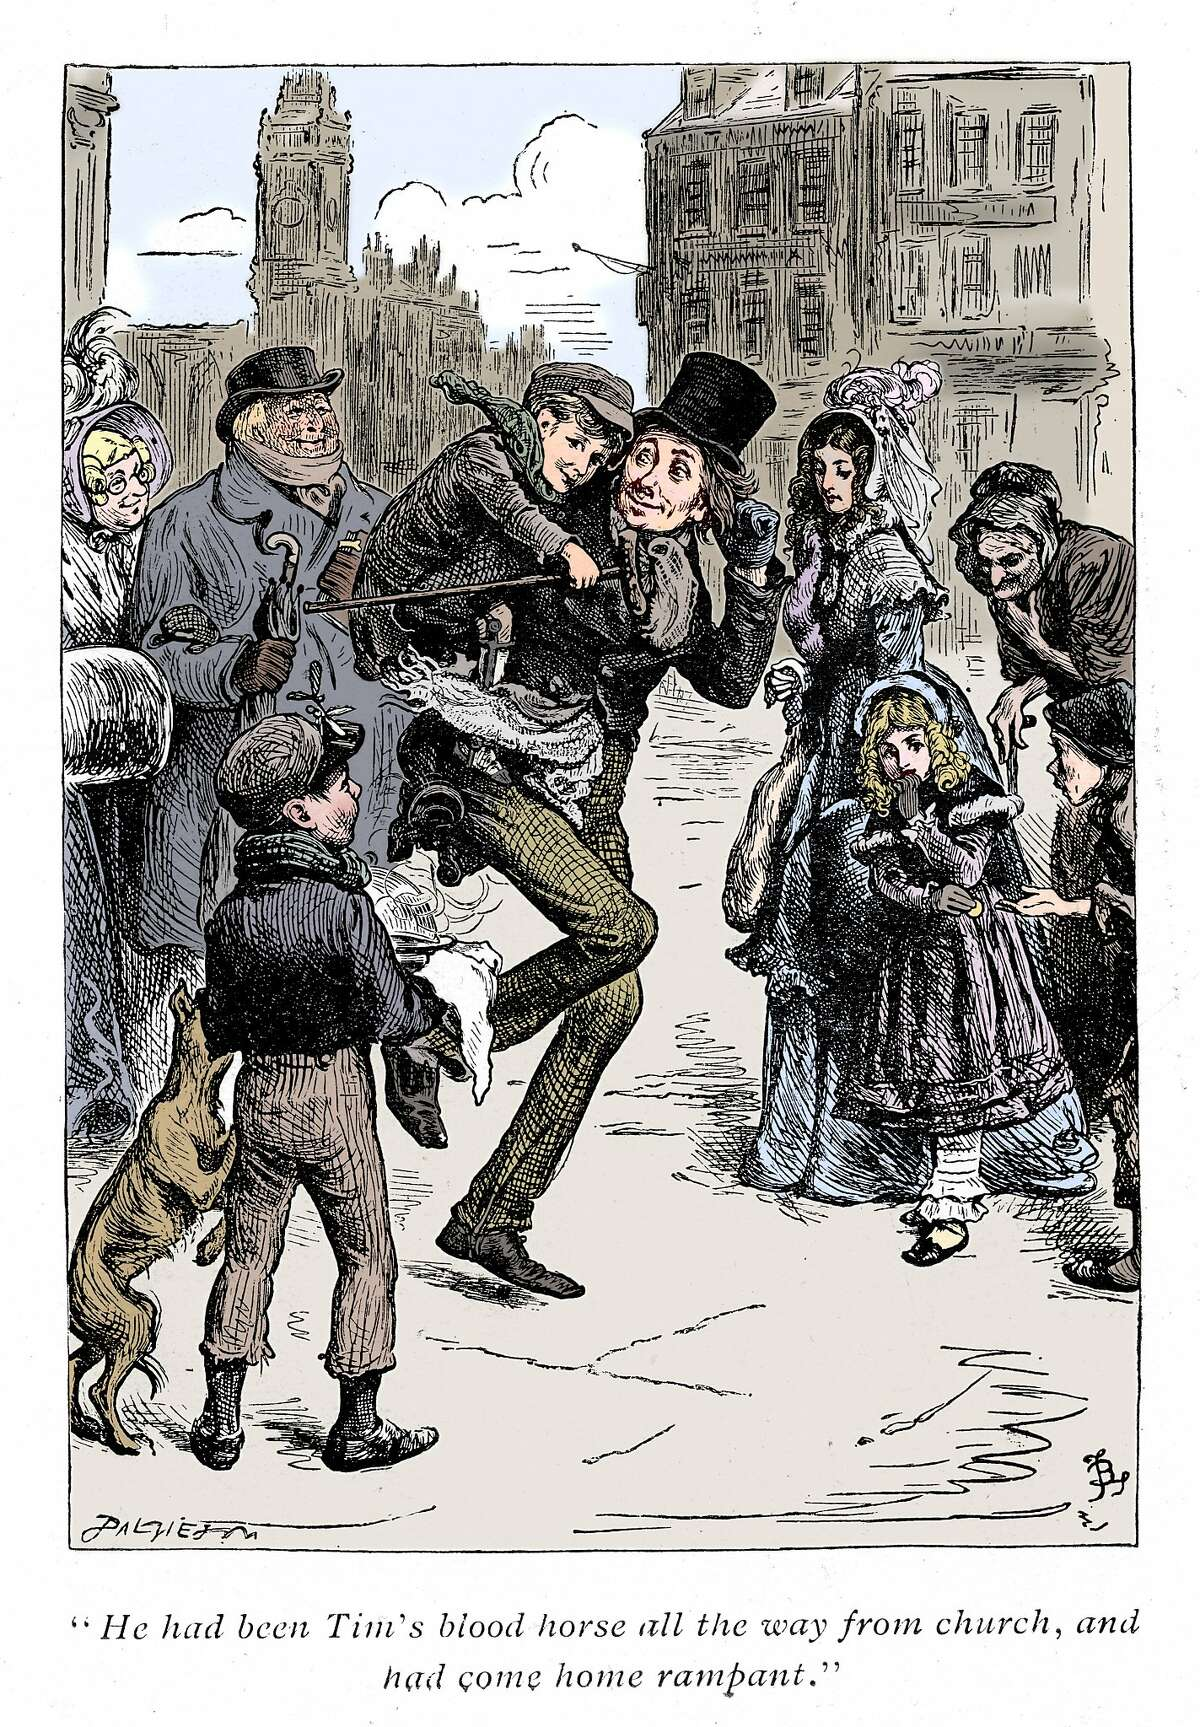 Bob Cratchett carries Tiny Tim in a scene from